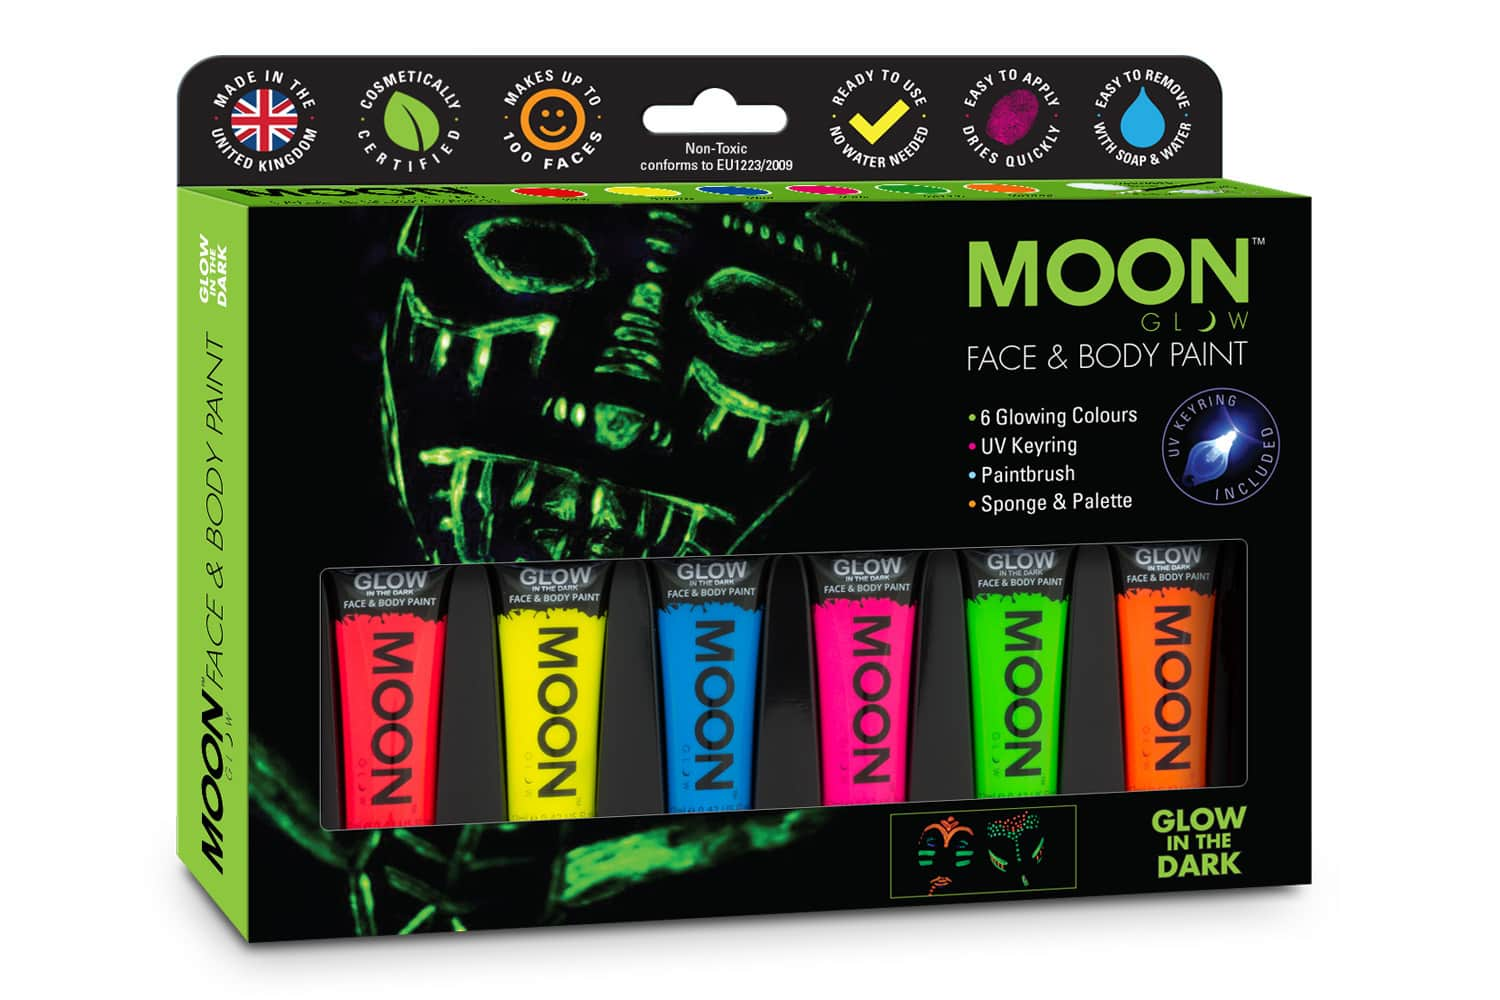 Face Paint Glow packaging design with glow in the dark face